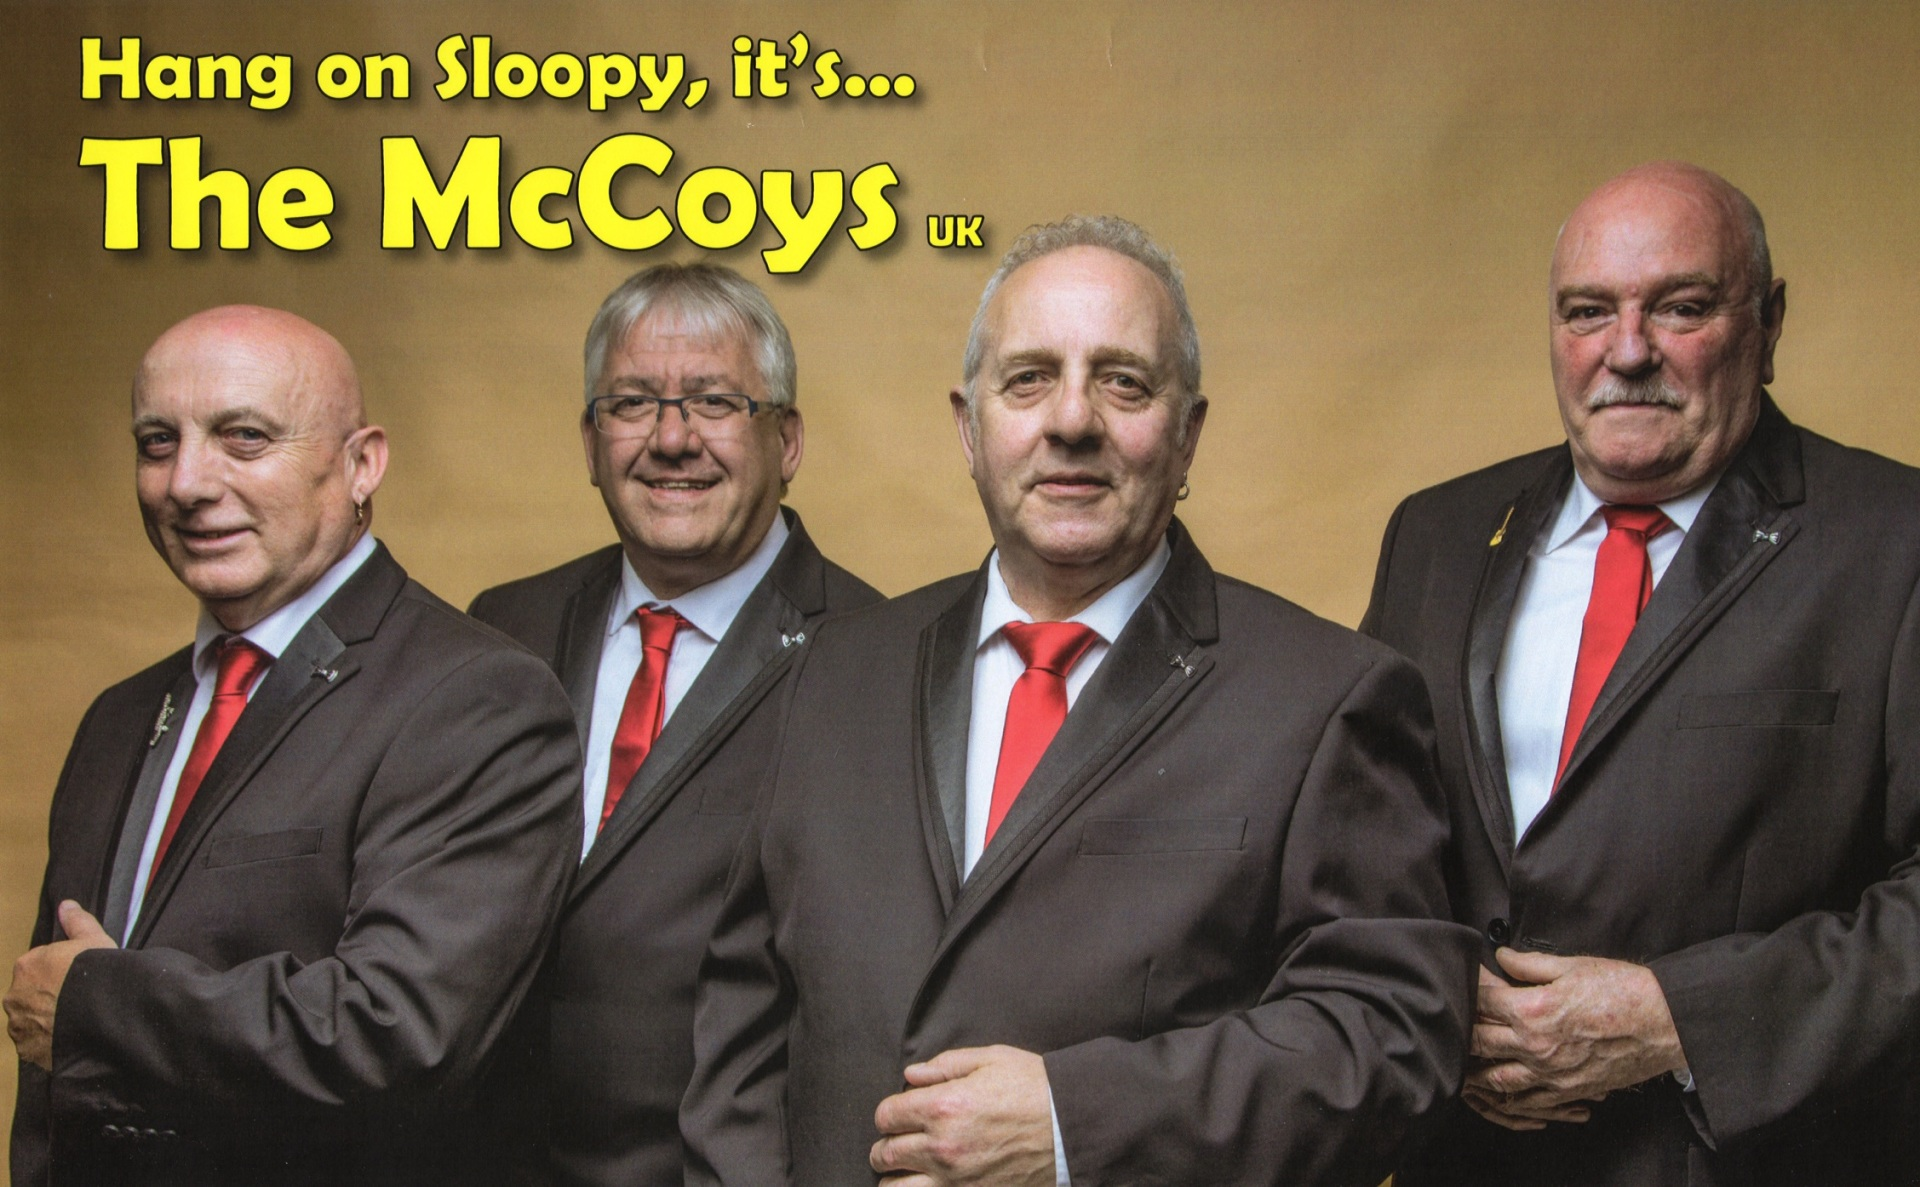 The McCoys uk